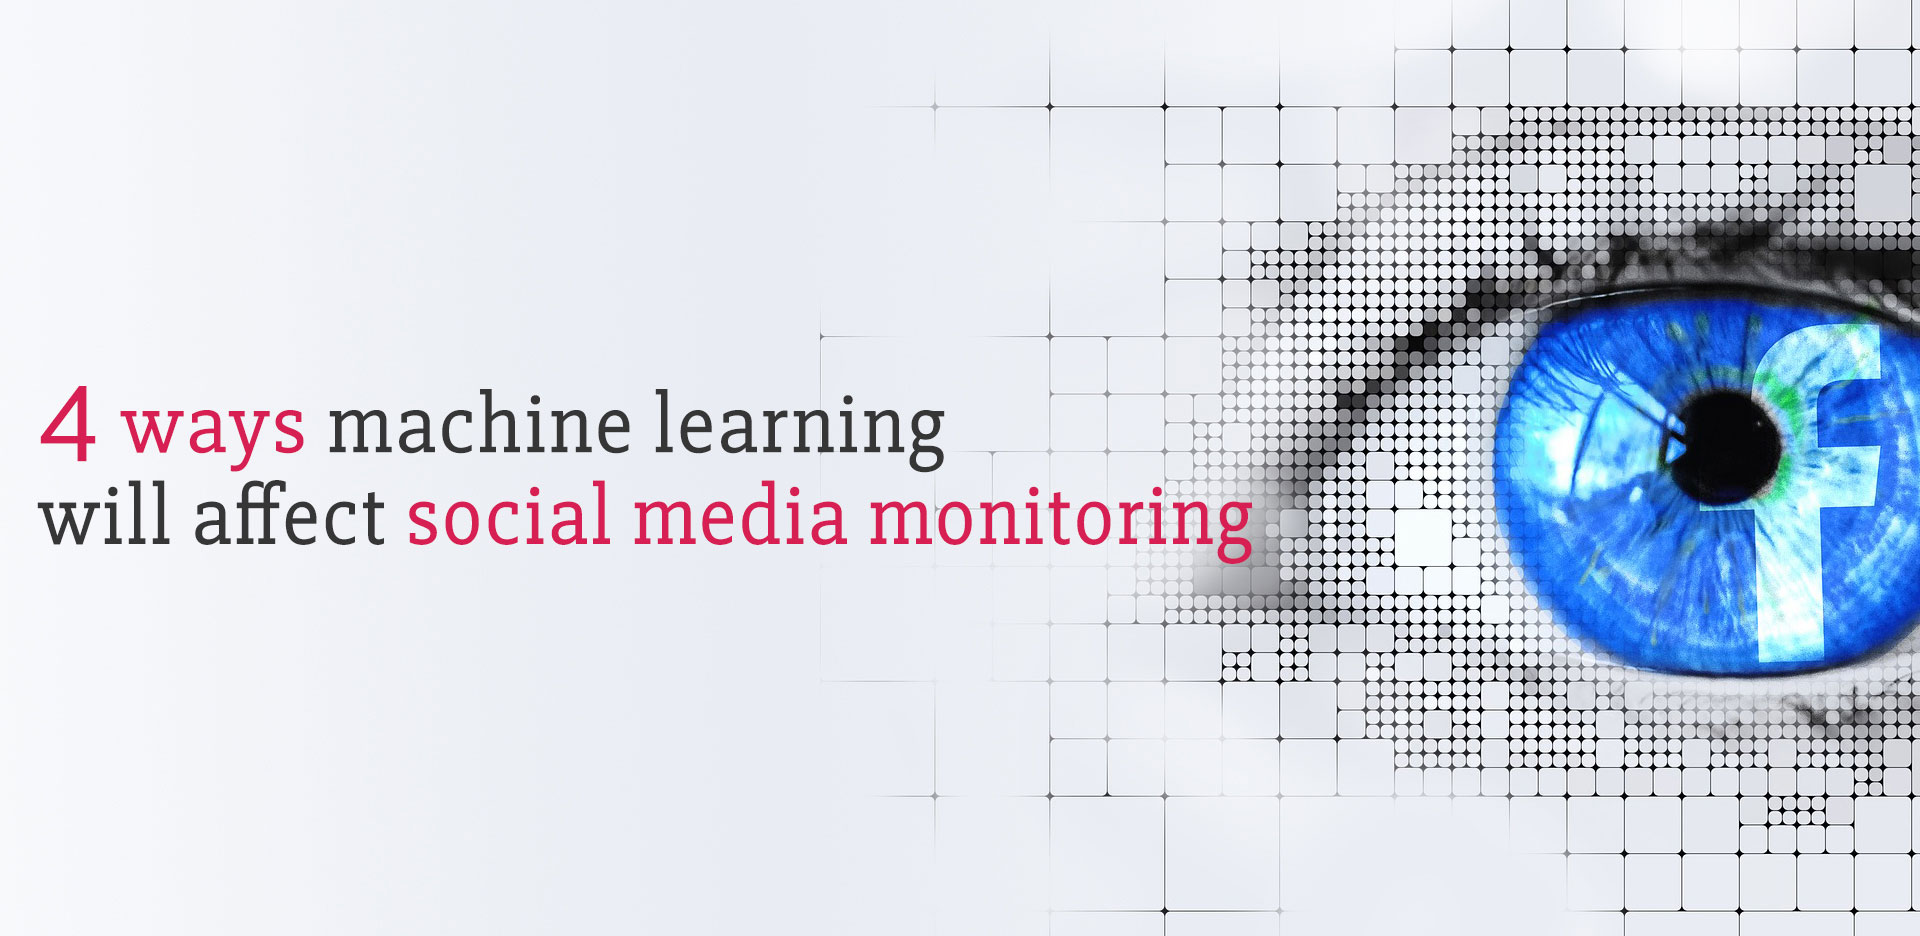 4-ways-machine-learning-will-affect-social-media-monitoring